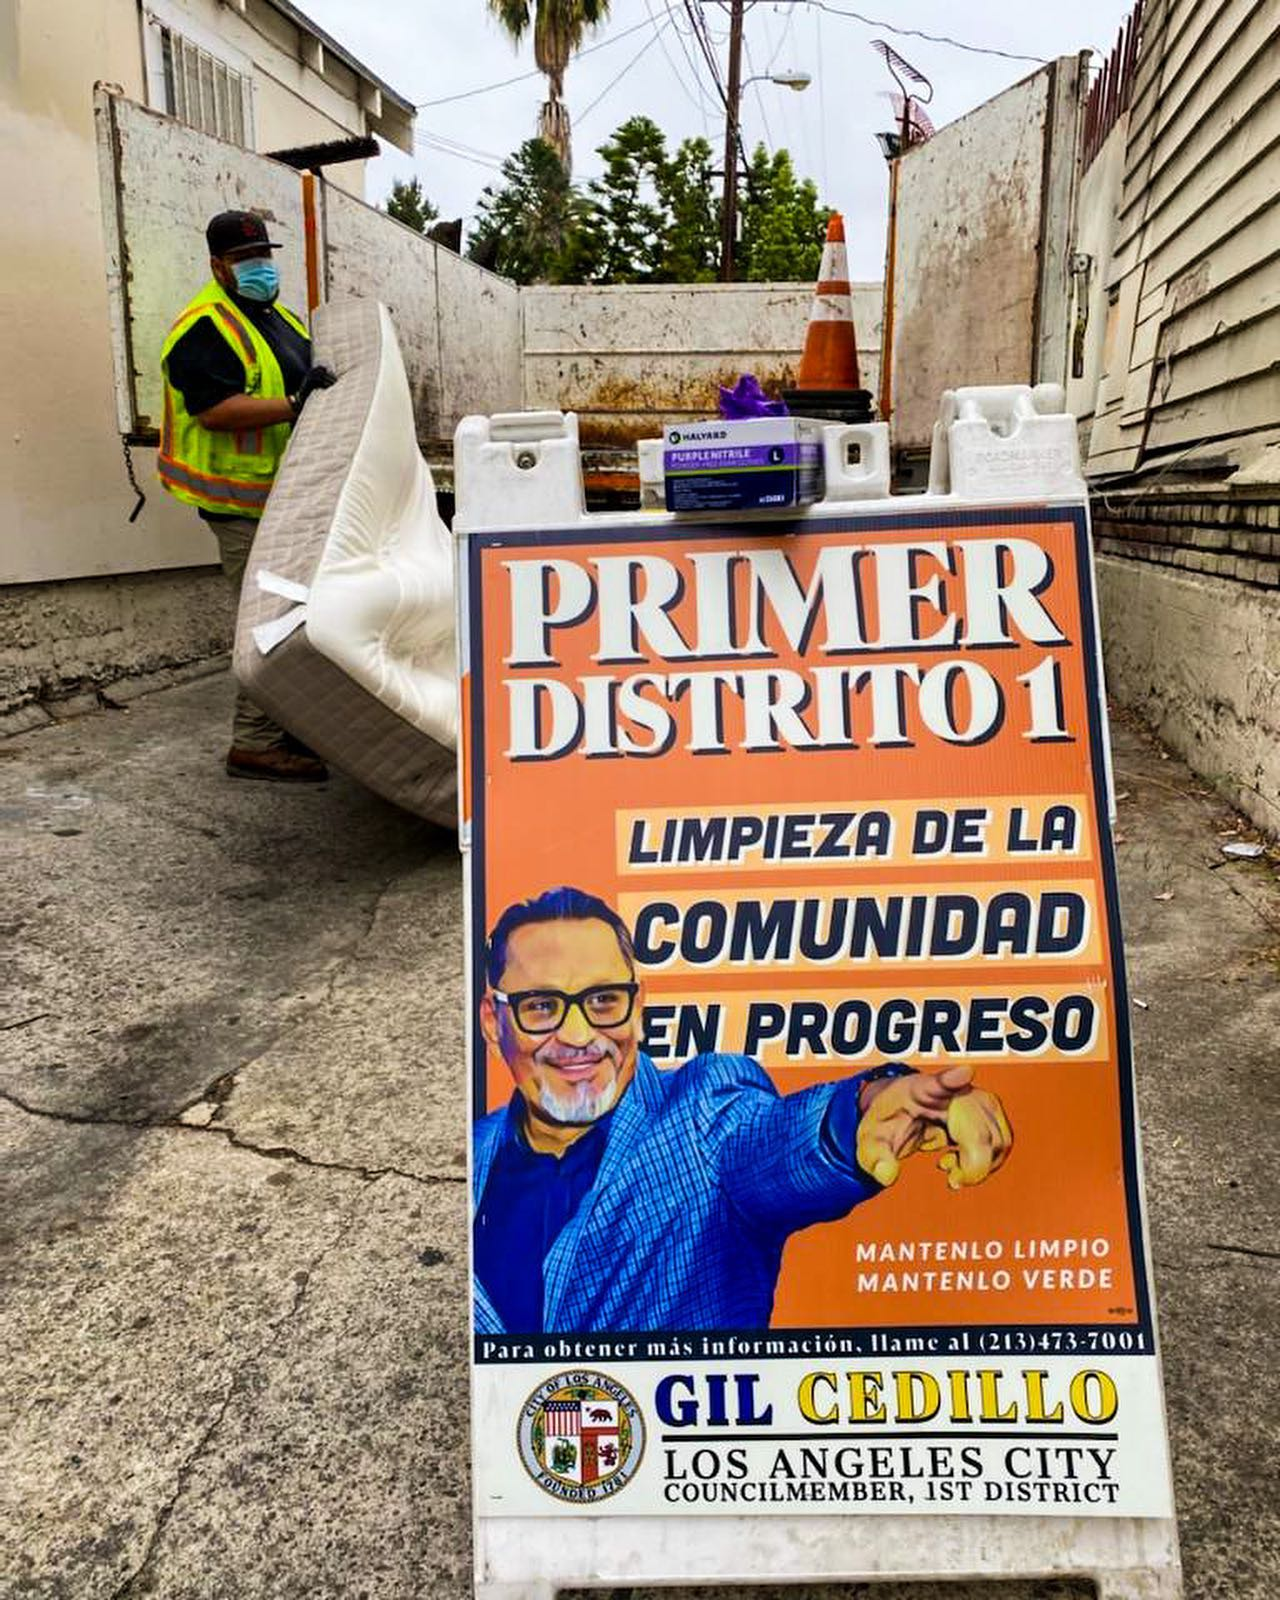 CD1 Community Clean up on the corner of 12th St. and Lake St. in Pico Union 5-14-2021